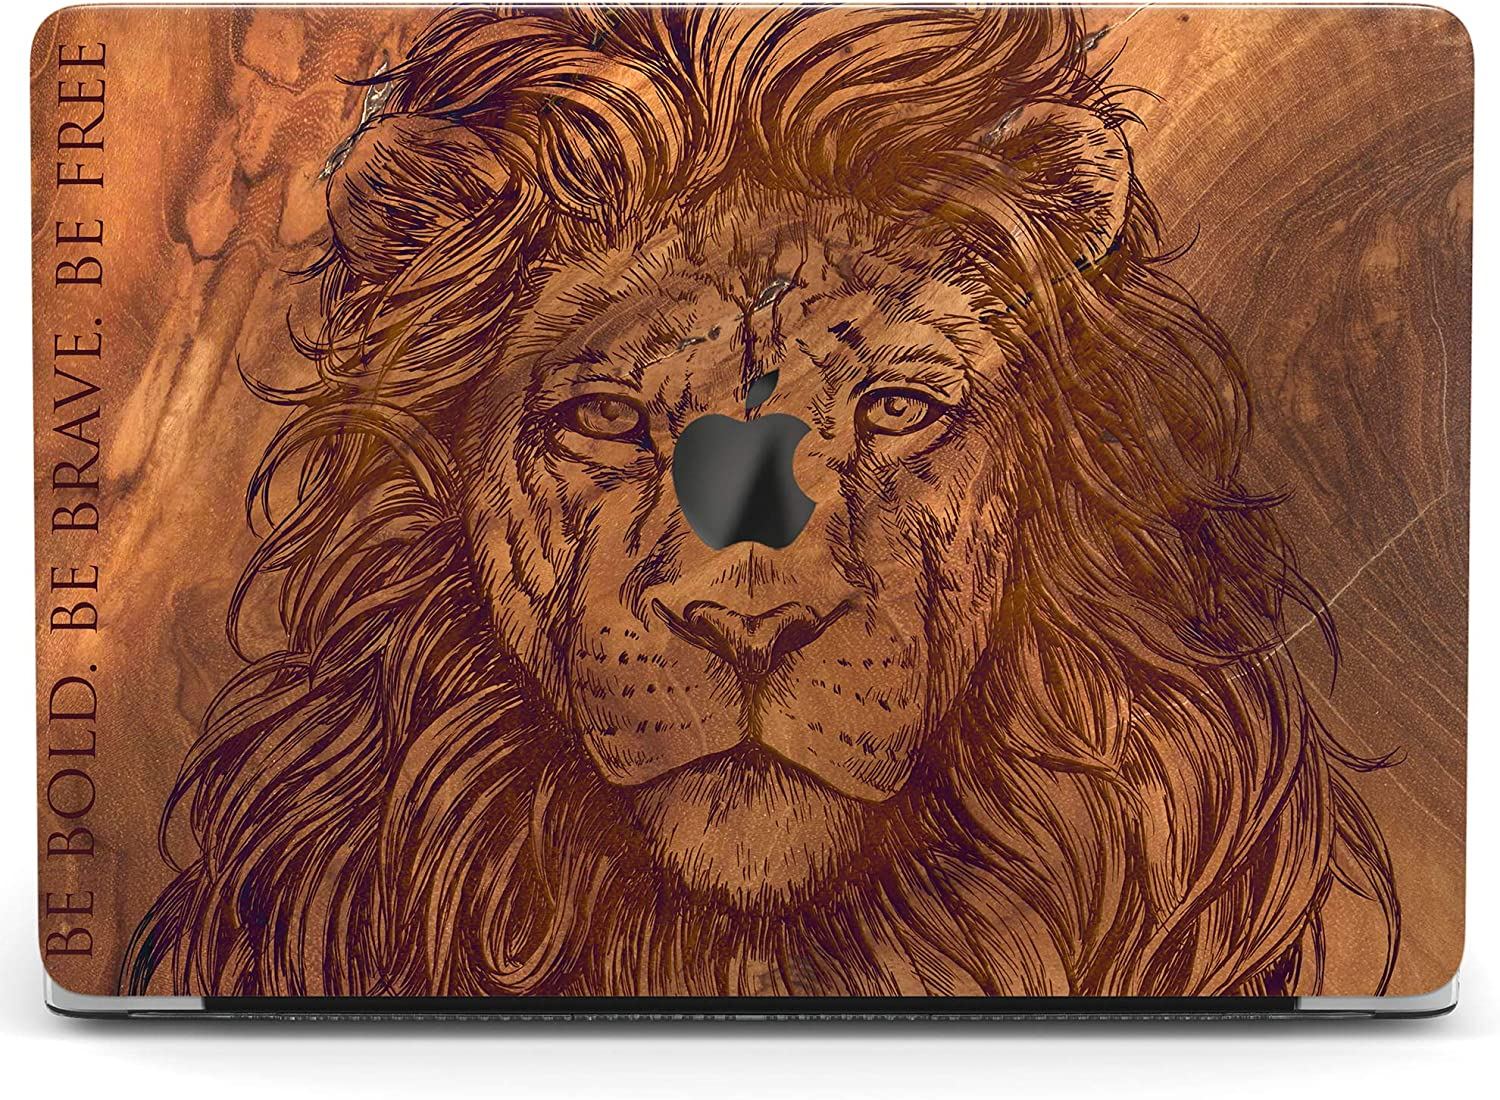 Wonder Wild Case for MacBook Air 13 inch Pro 15 2019 2018 Retina 12 11 Apple Hard Mac Protective Cover Touch Bar 2017 2016 2020 Plastic Laptop Print Boho Lion Wooden Animal Saying Brown Nature Quote